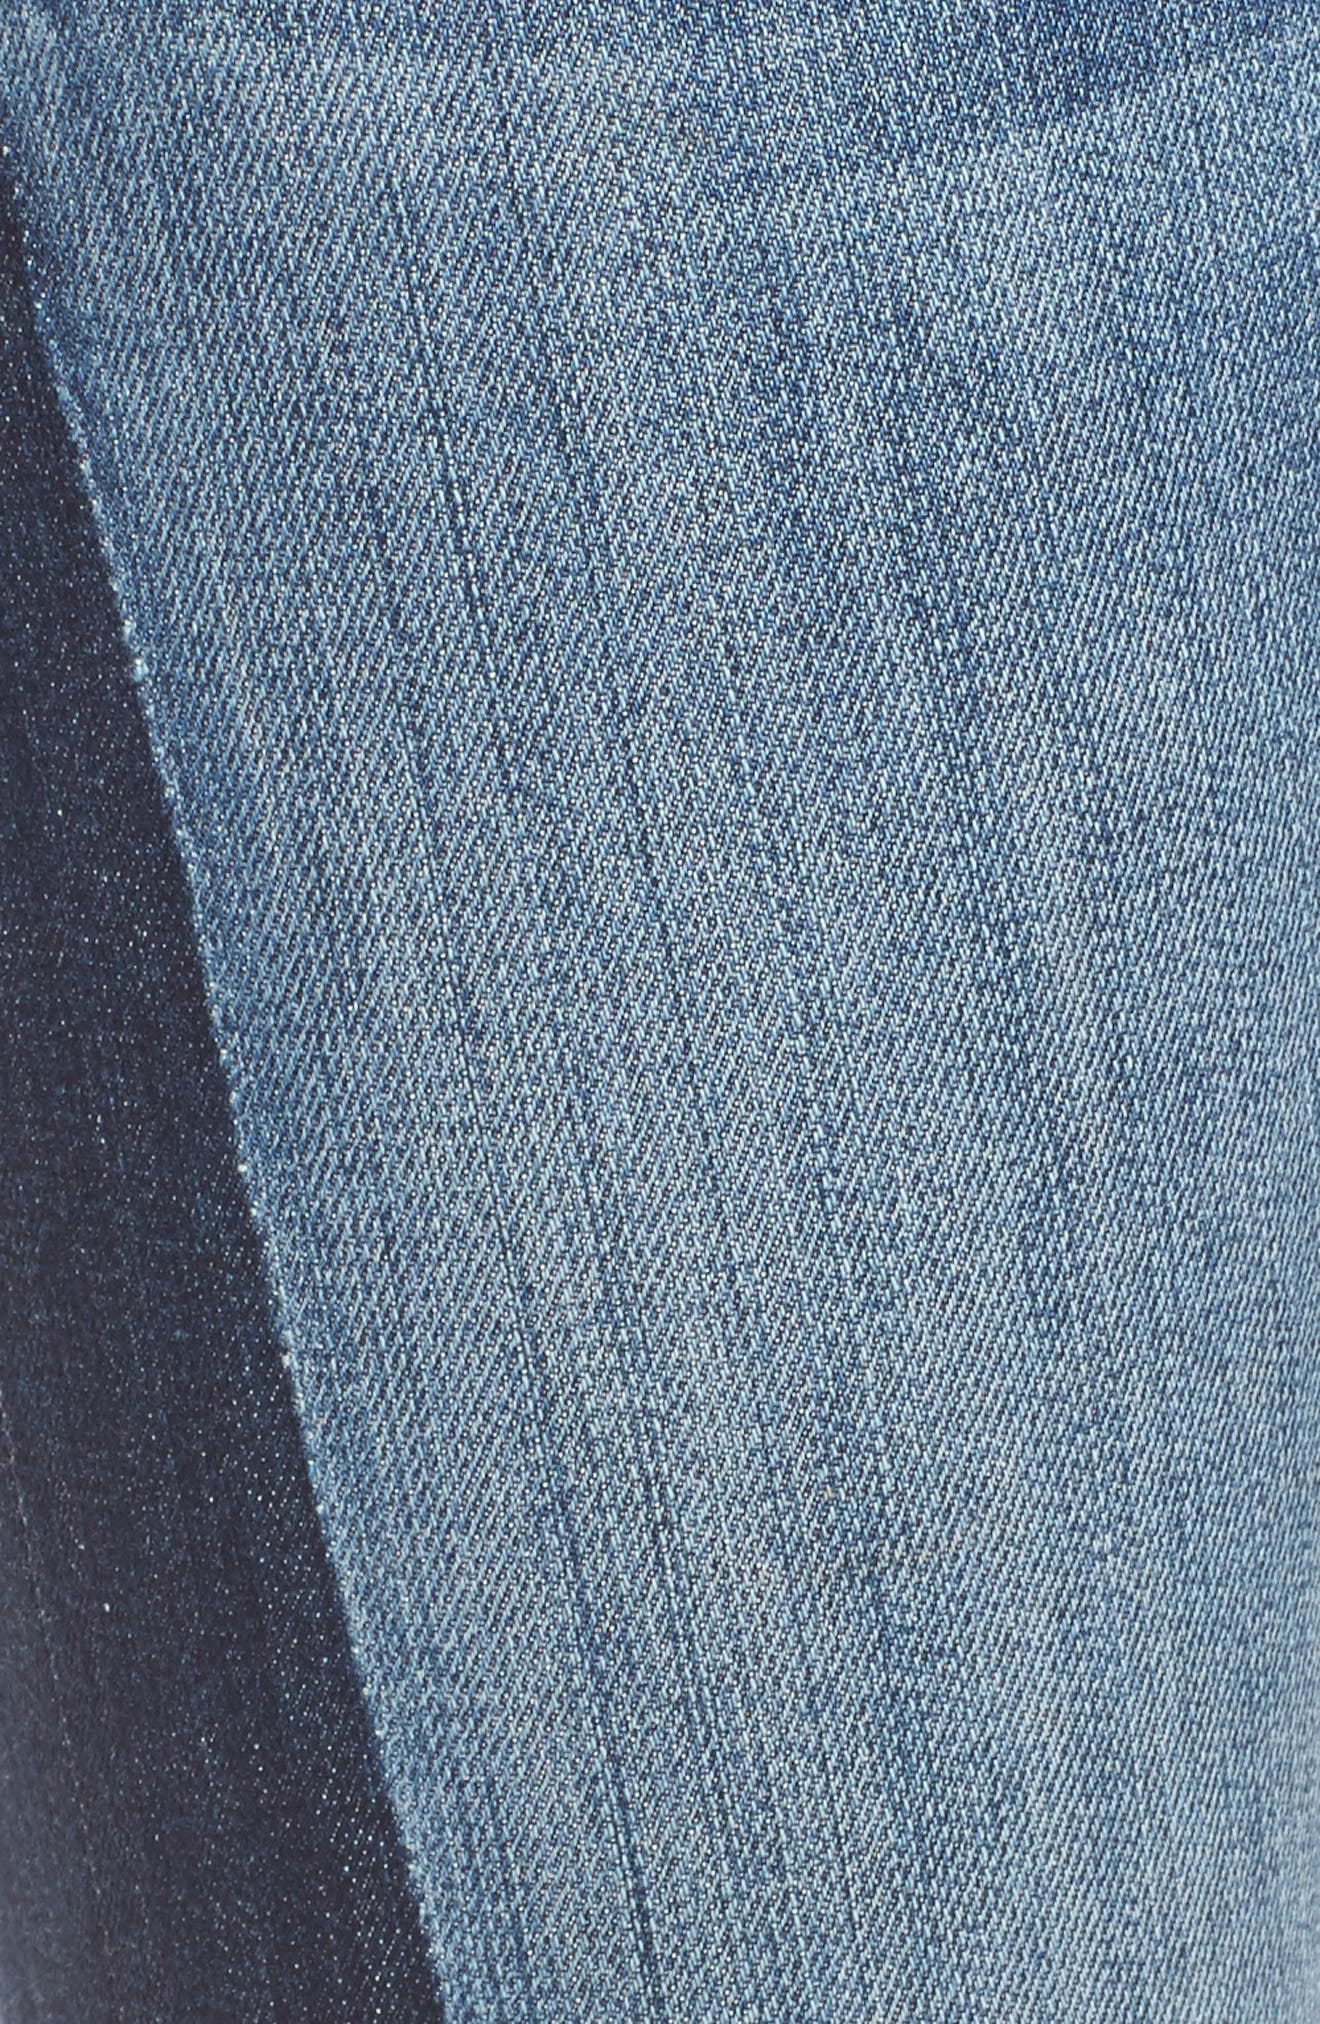 Reese Patch Jeans,                             Alternate thumbnail 6, color,                             460